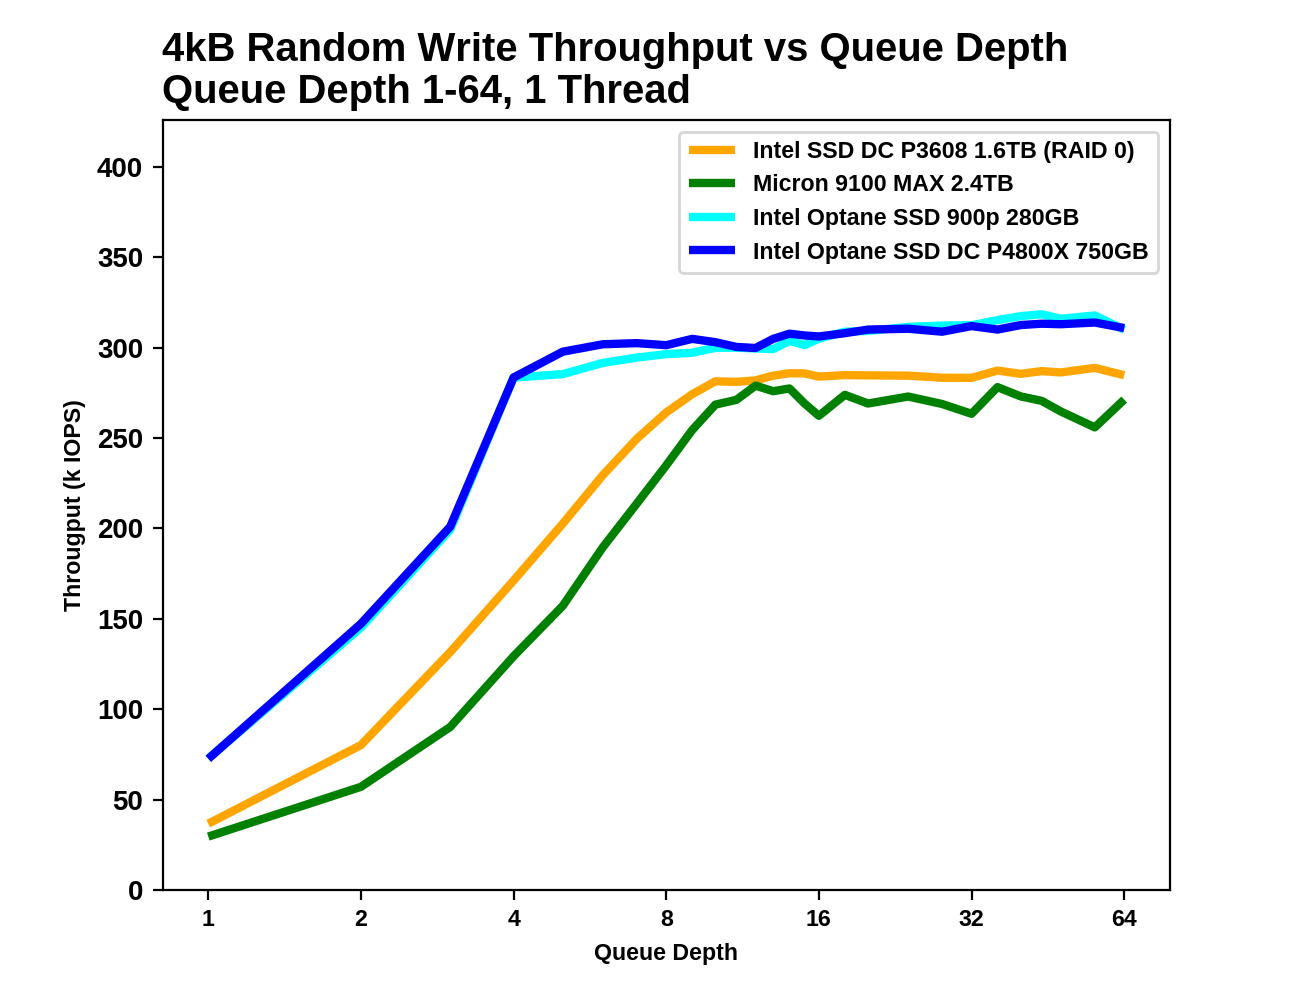 Random Write Throughput